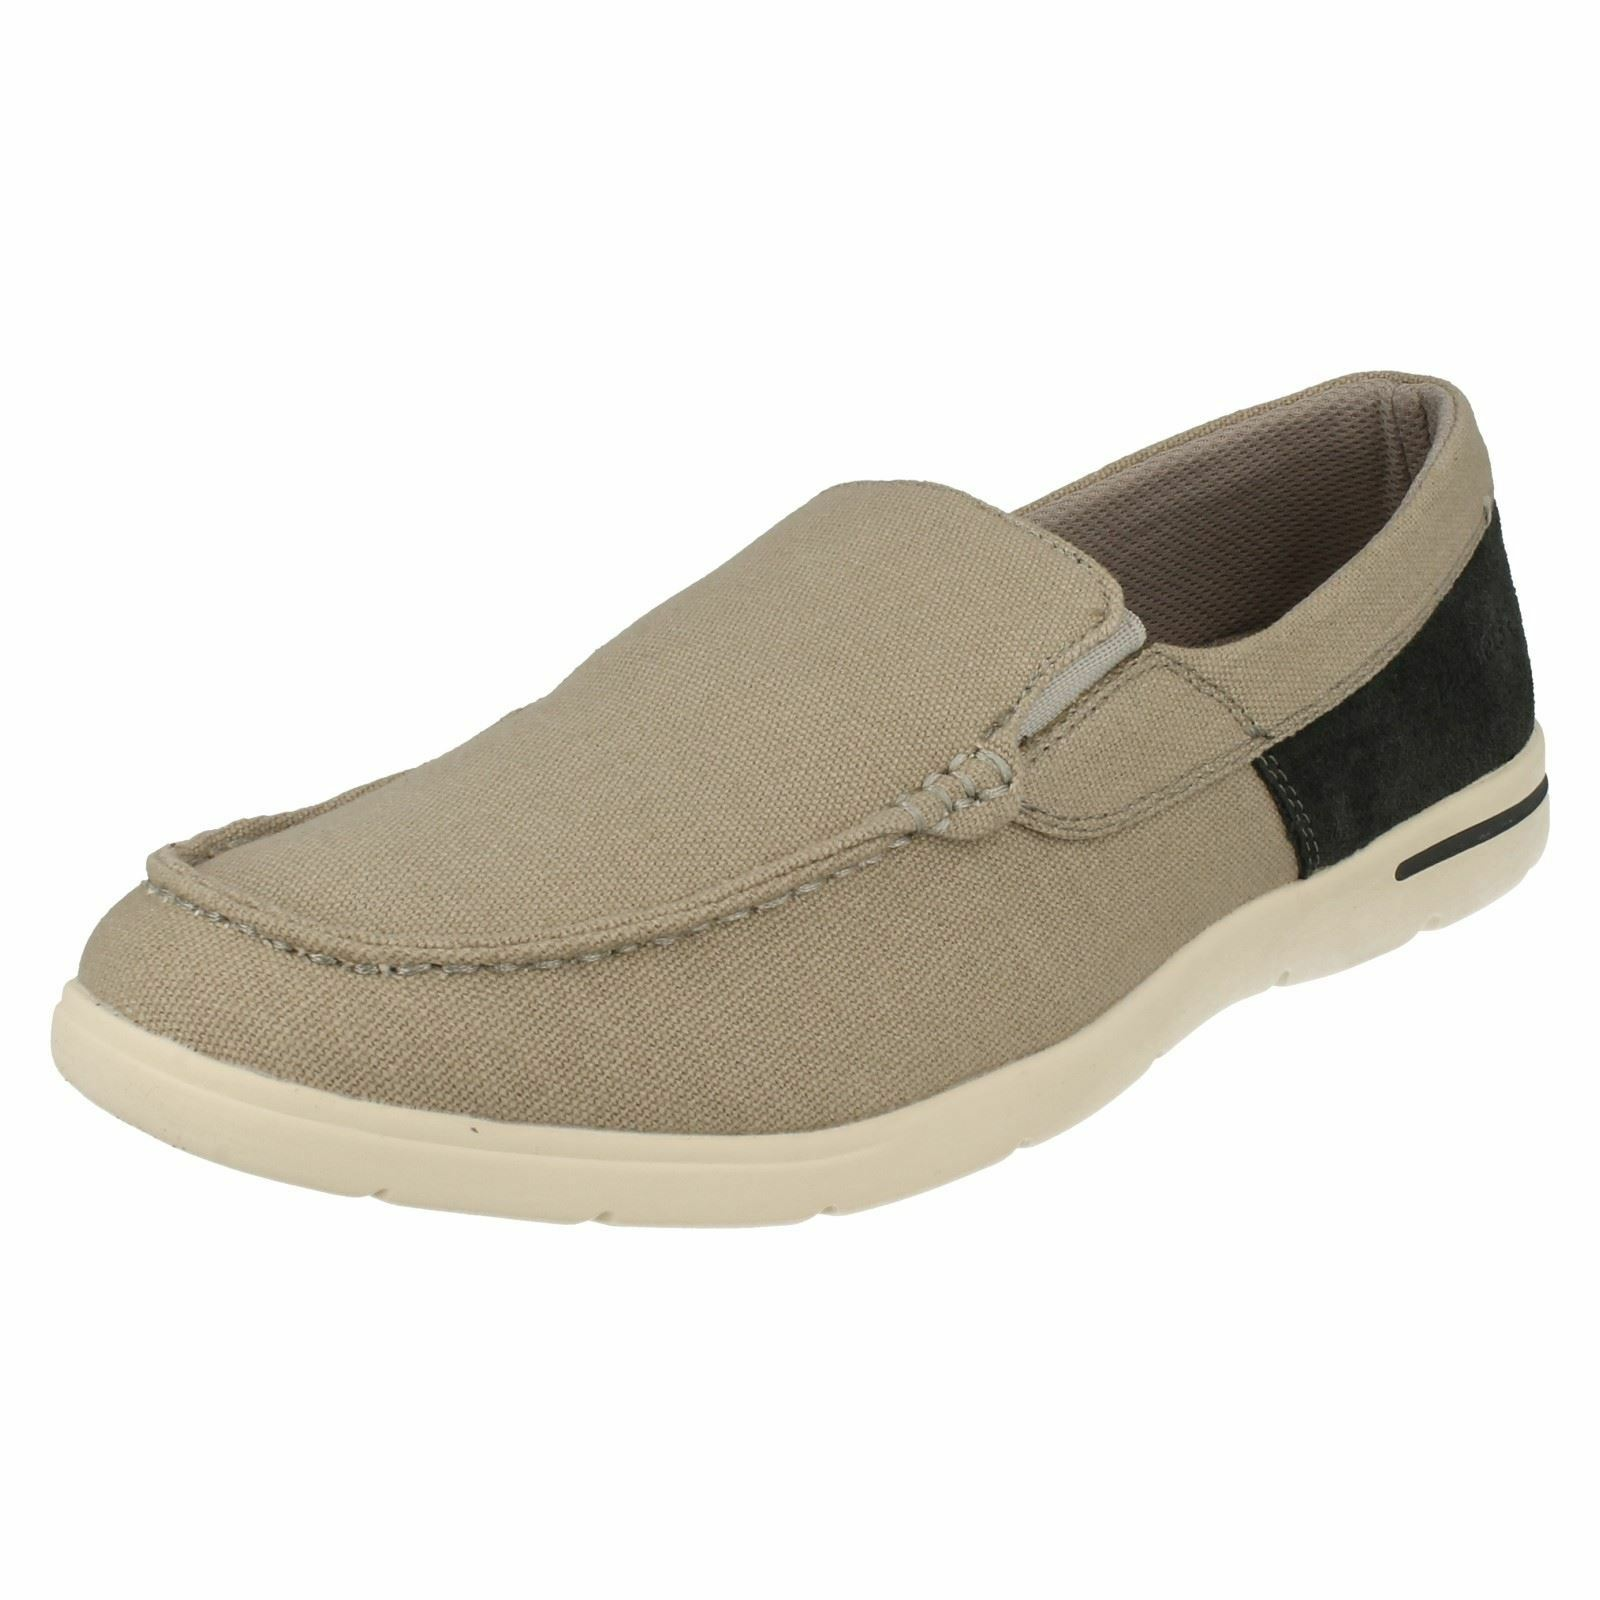 Mens Padders Casual Slip On shoes 'Lee'